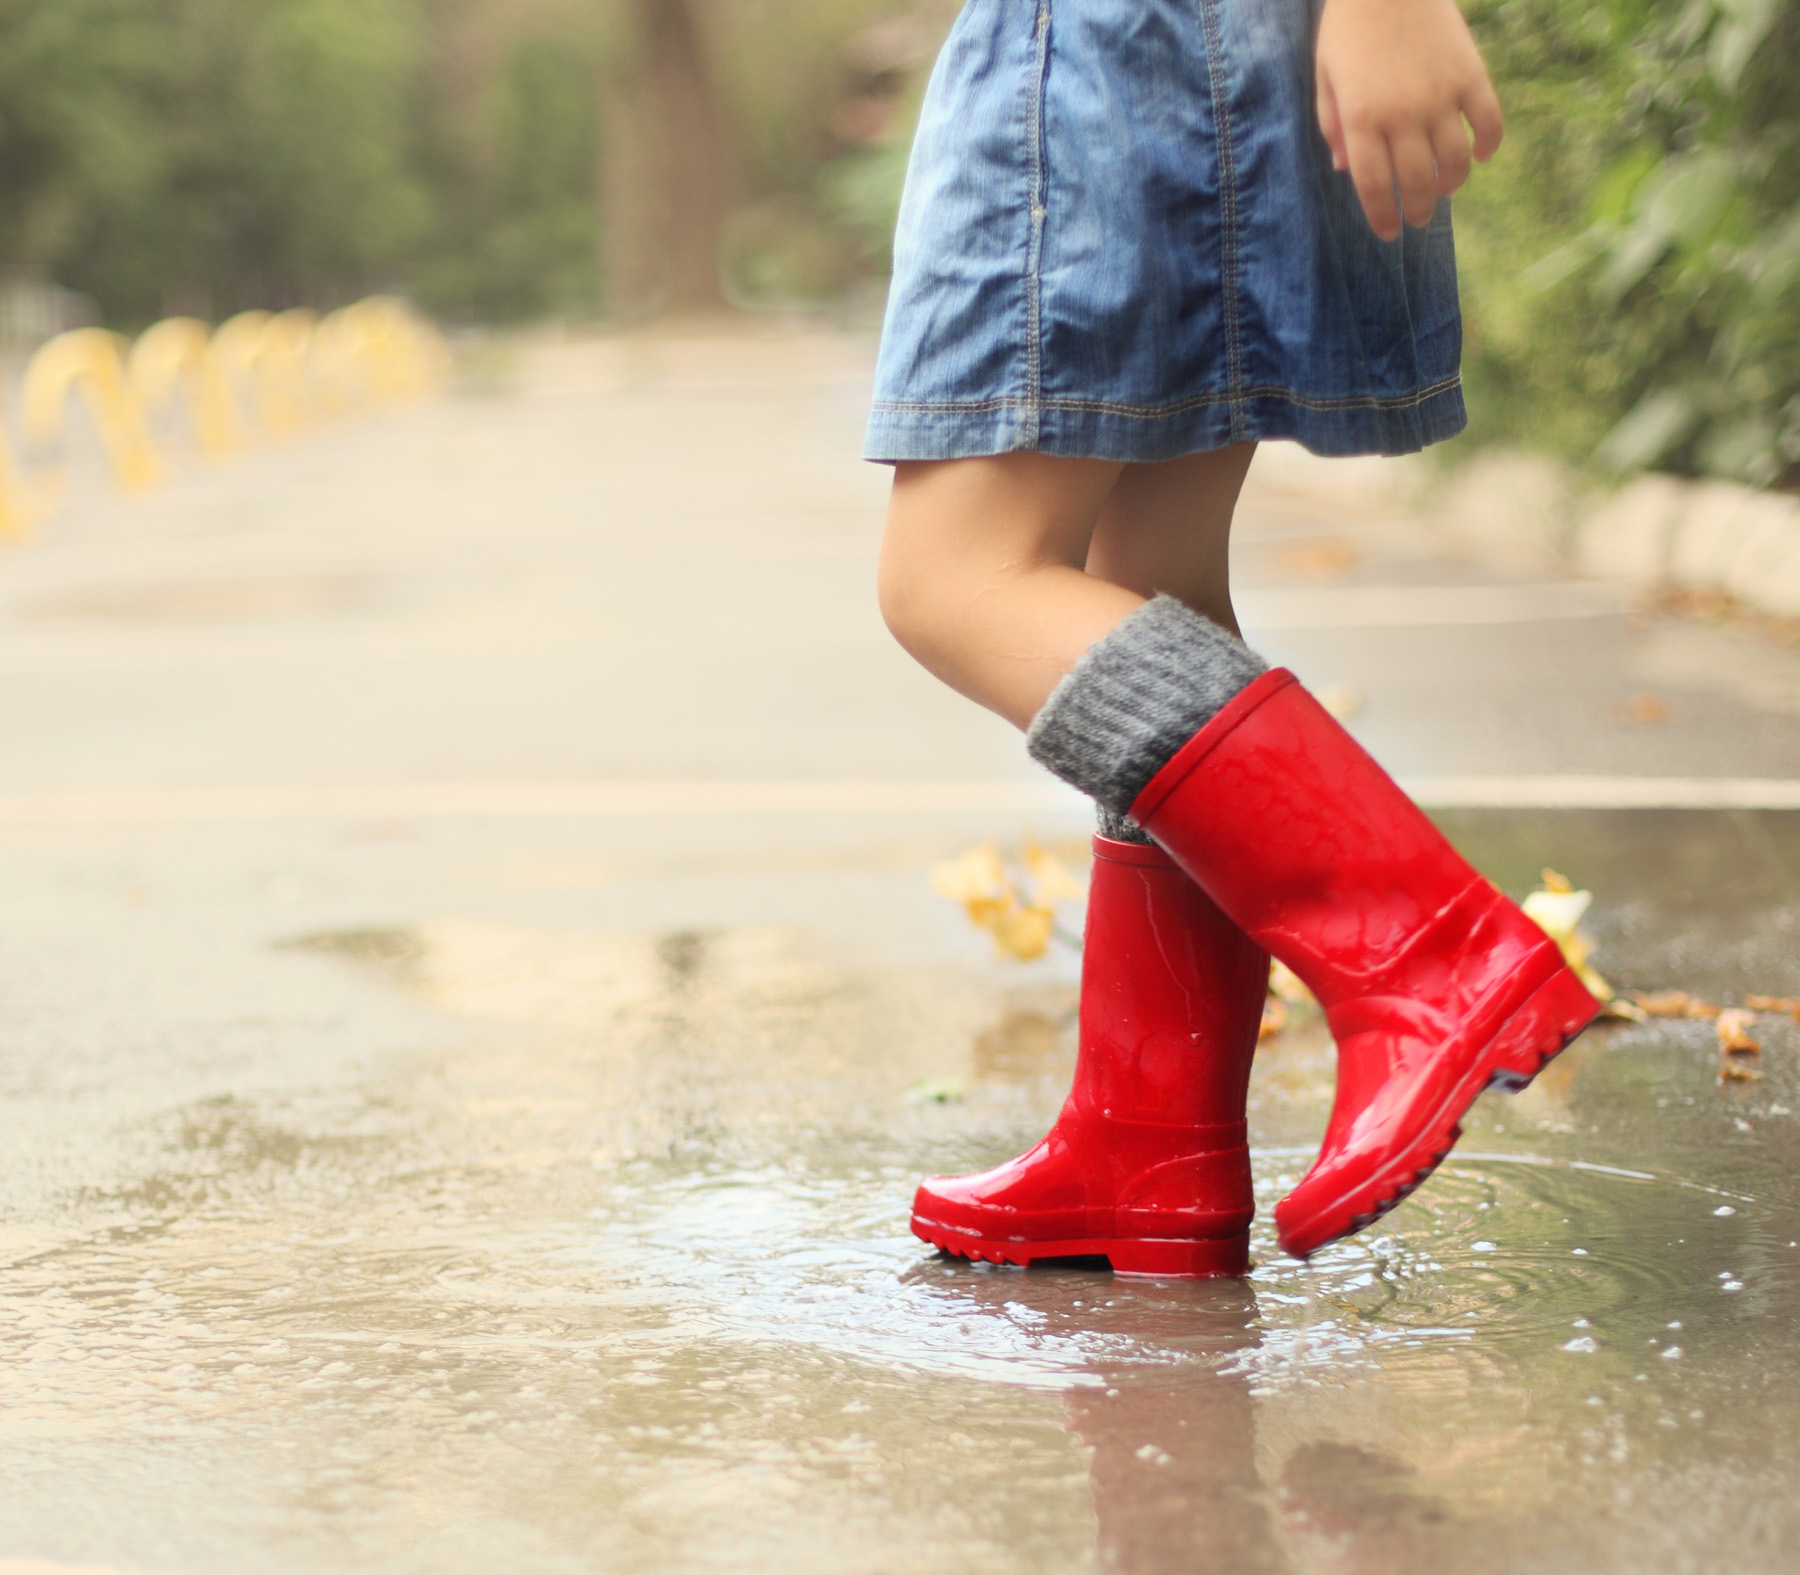 The little girl wearing red boots 52026